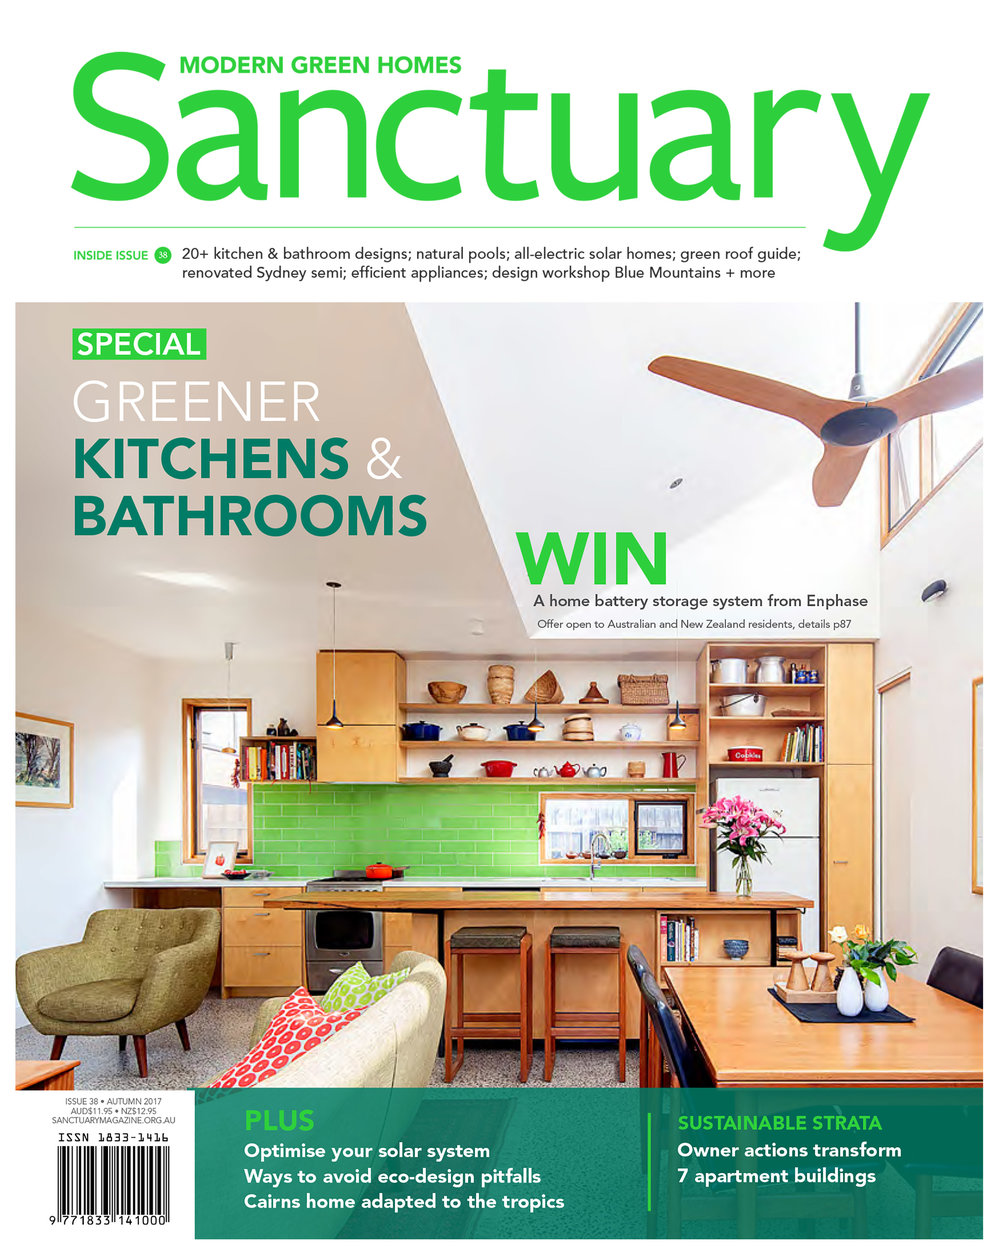 Sanctuary magazine issue 38 larger.jpg